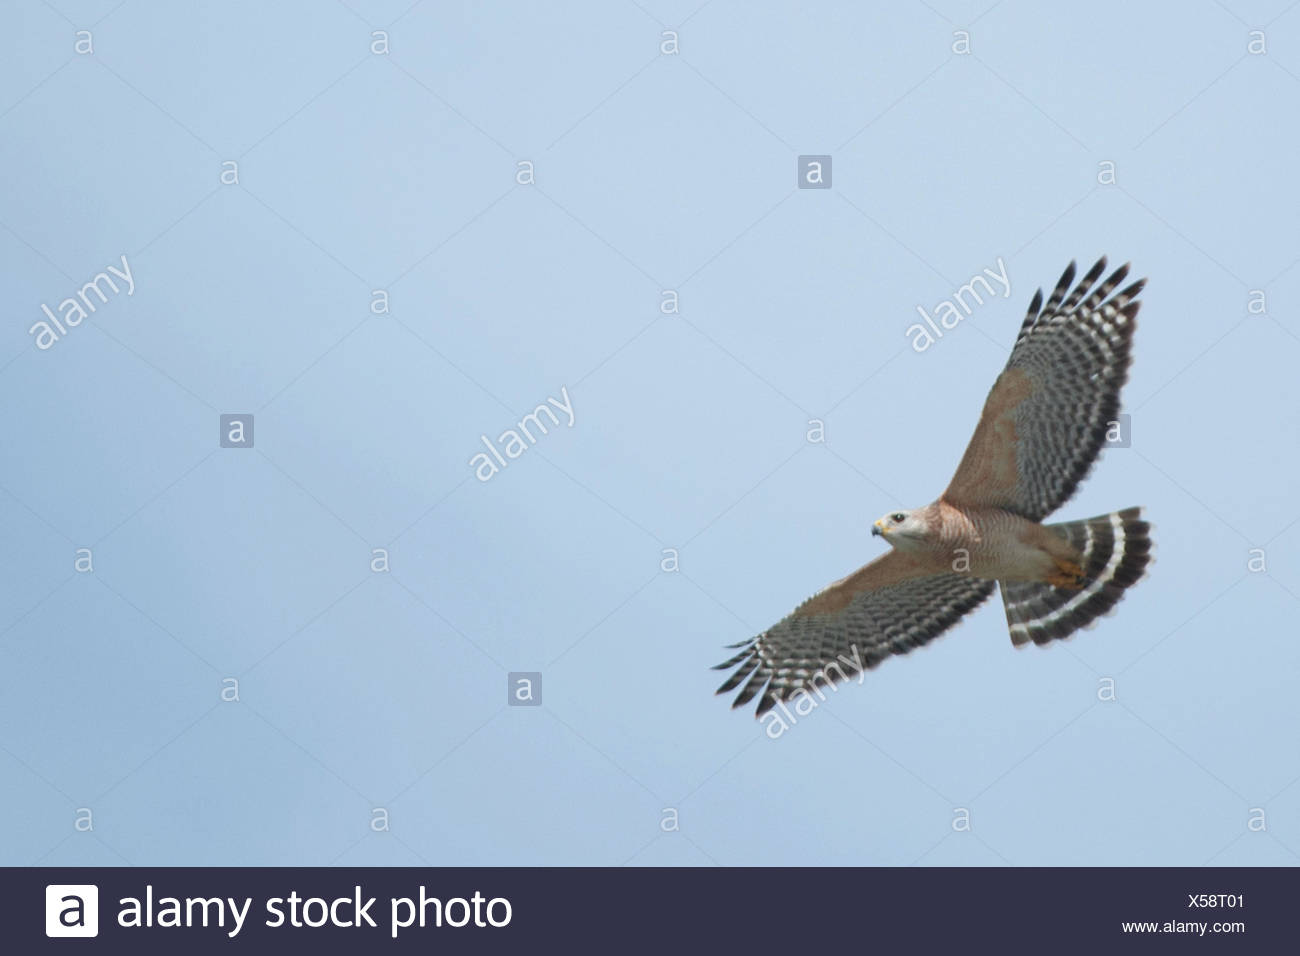 A red-shouldered hawk, Buteo lineatus, in flight. - Stock Image